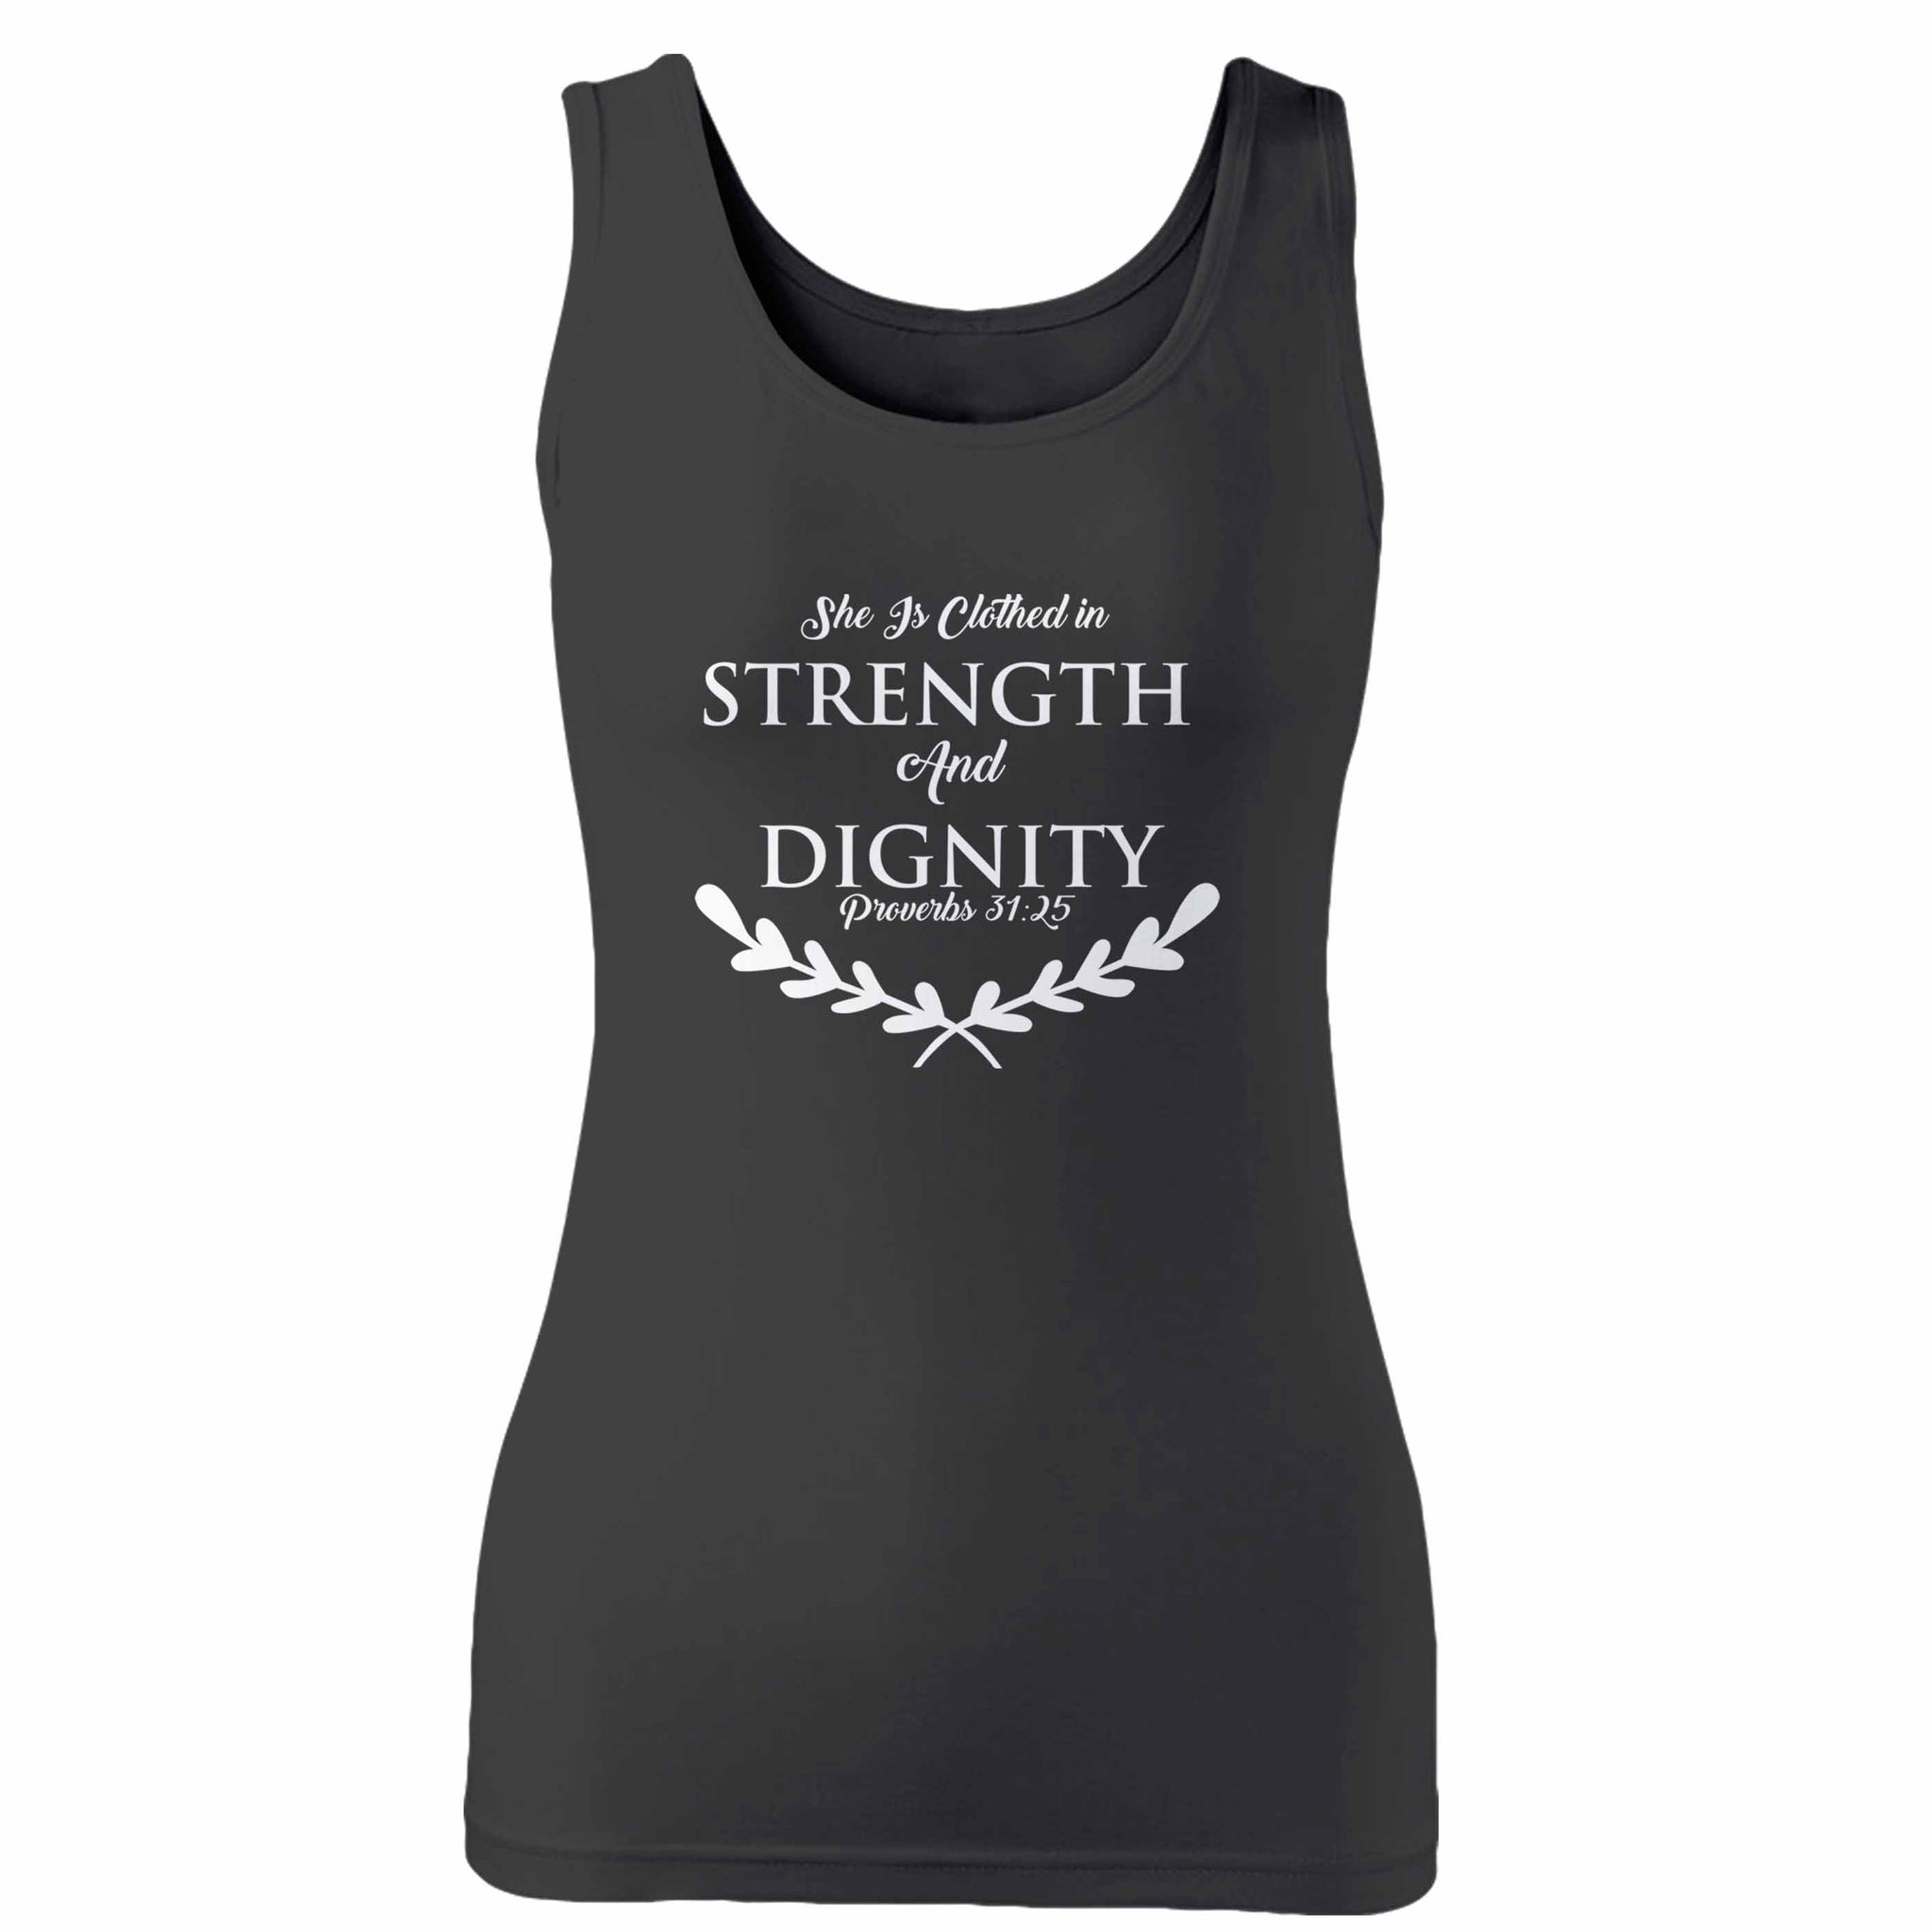 She Is Clothed In Strength & Dignity Christian Proverbs 31 25 Woman's Tank Top